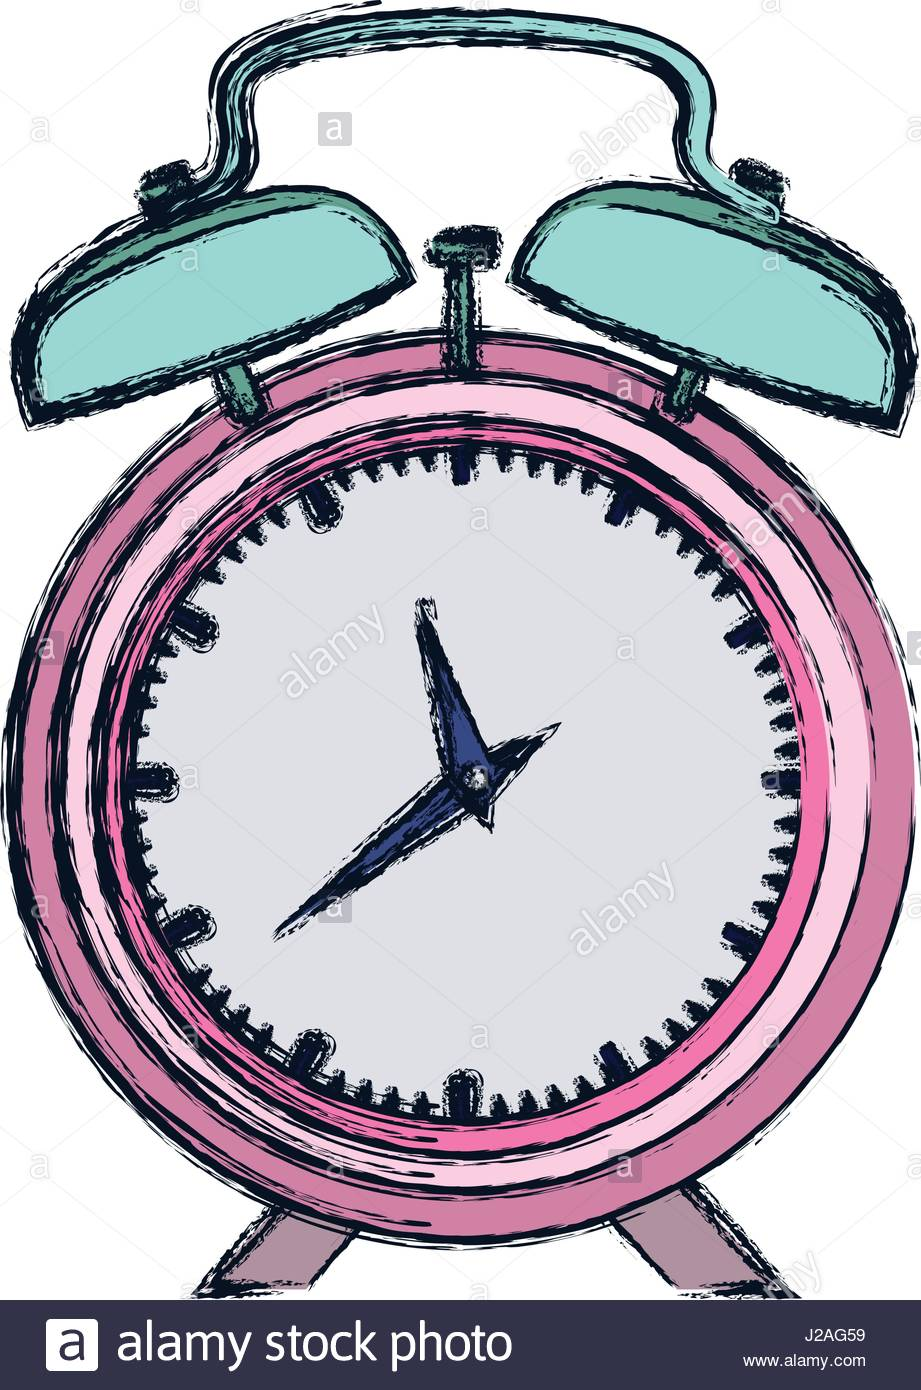 921x1390 Hand Drawing Color Pink Alarm Clock And Thick Contour Stock Vector